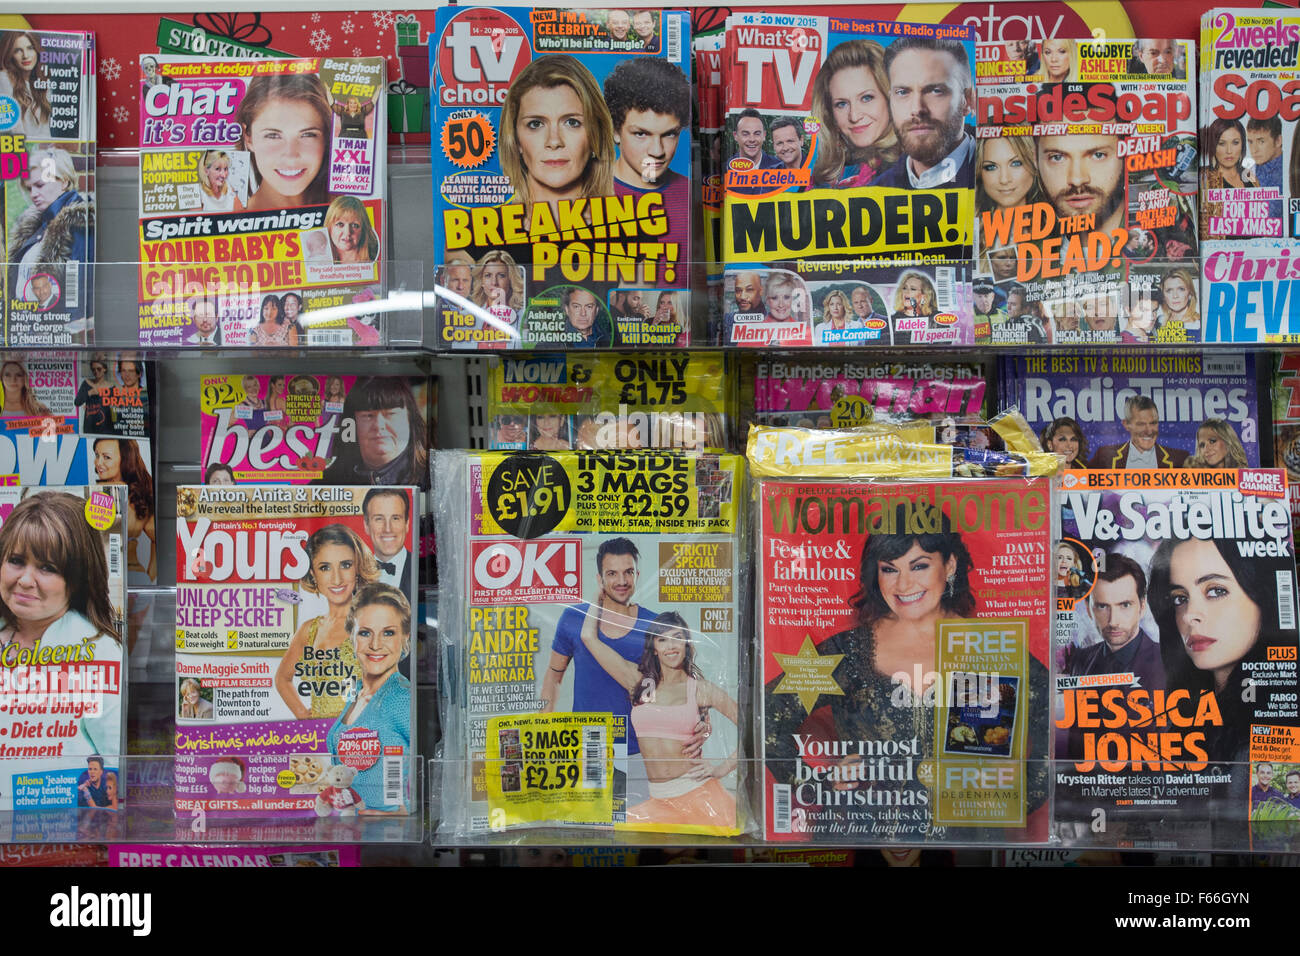 Celebrity and womens magazines on sale on a rack in a newsagent store. - Stock Image